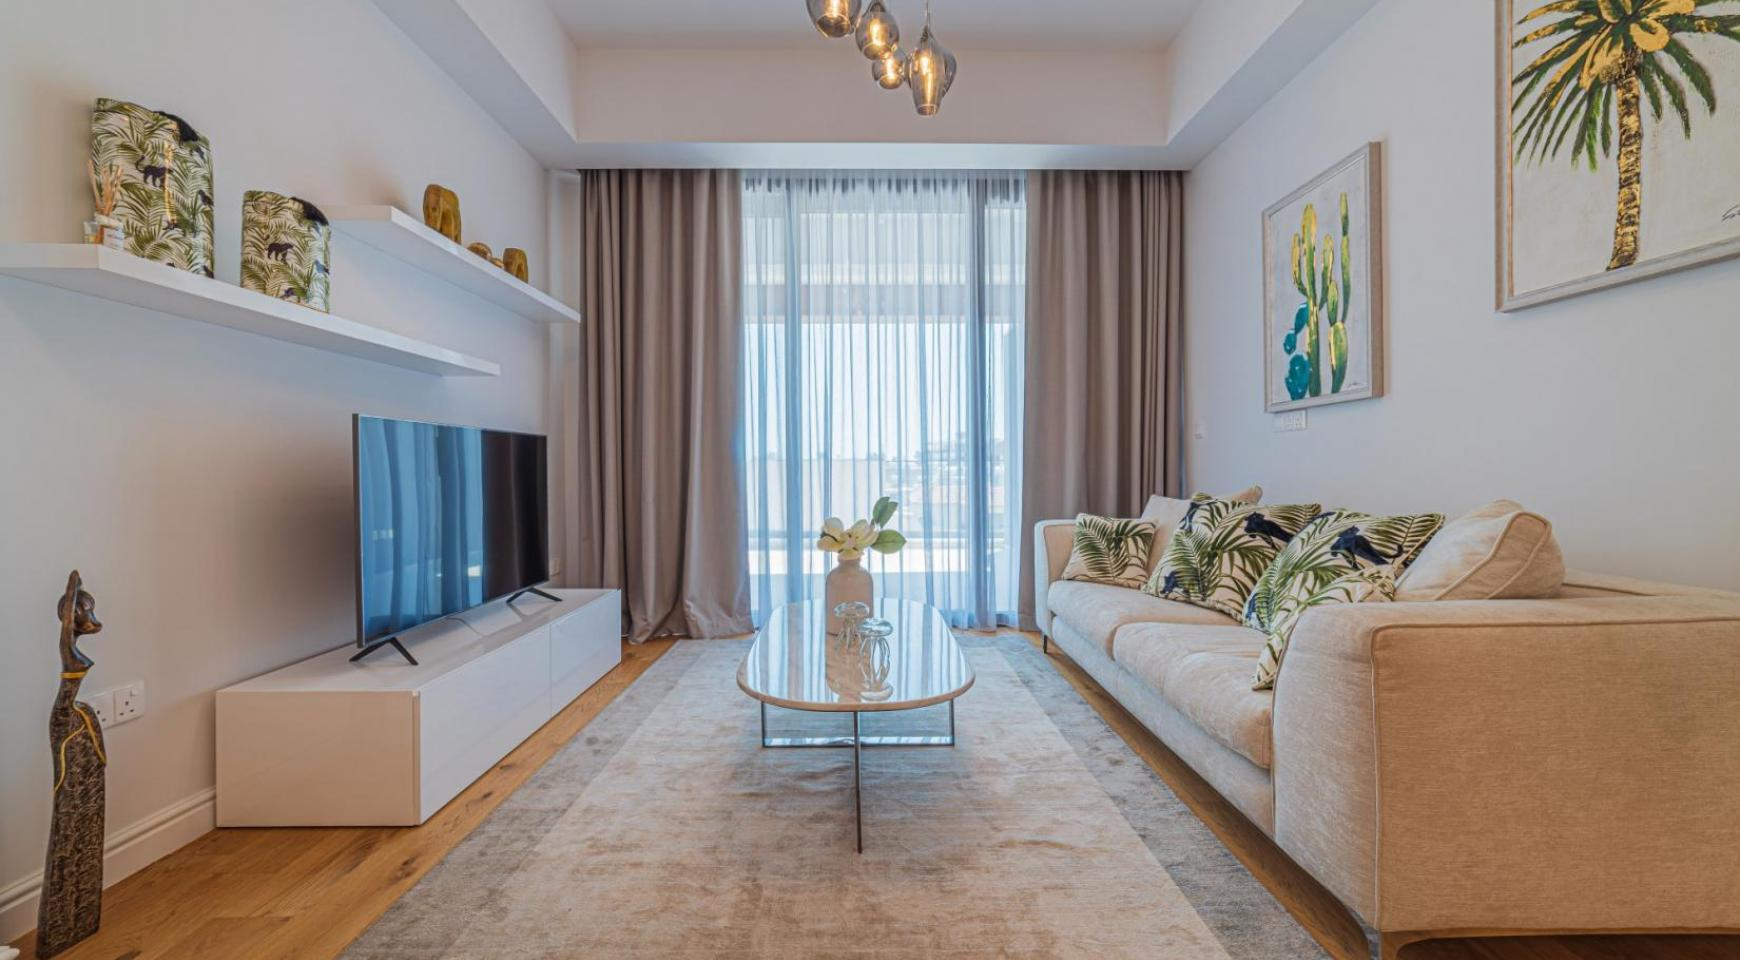 Hortensia Residence, Apt. 201. 2 Bedroom Apartment within a New Complex near the Sea  - 50